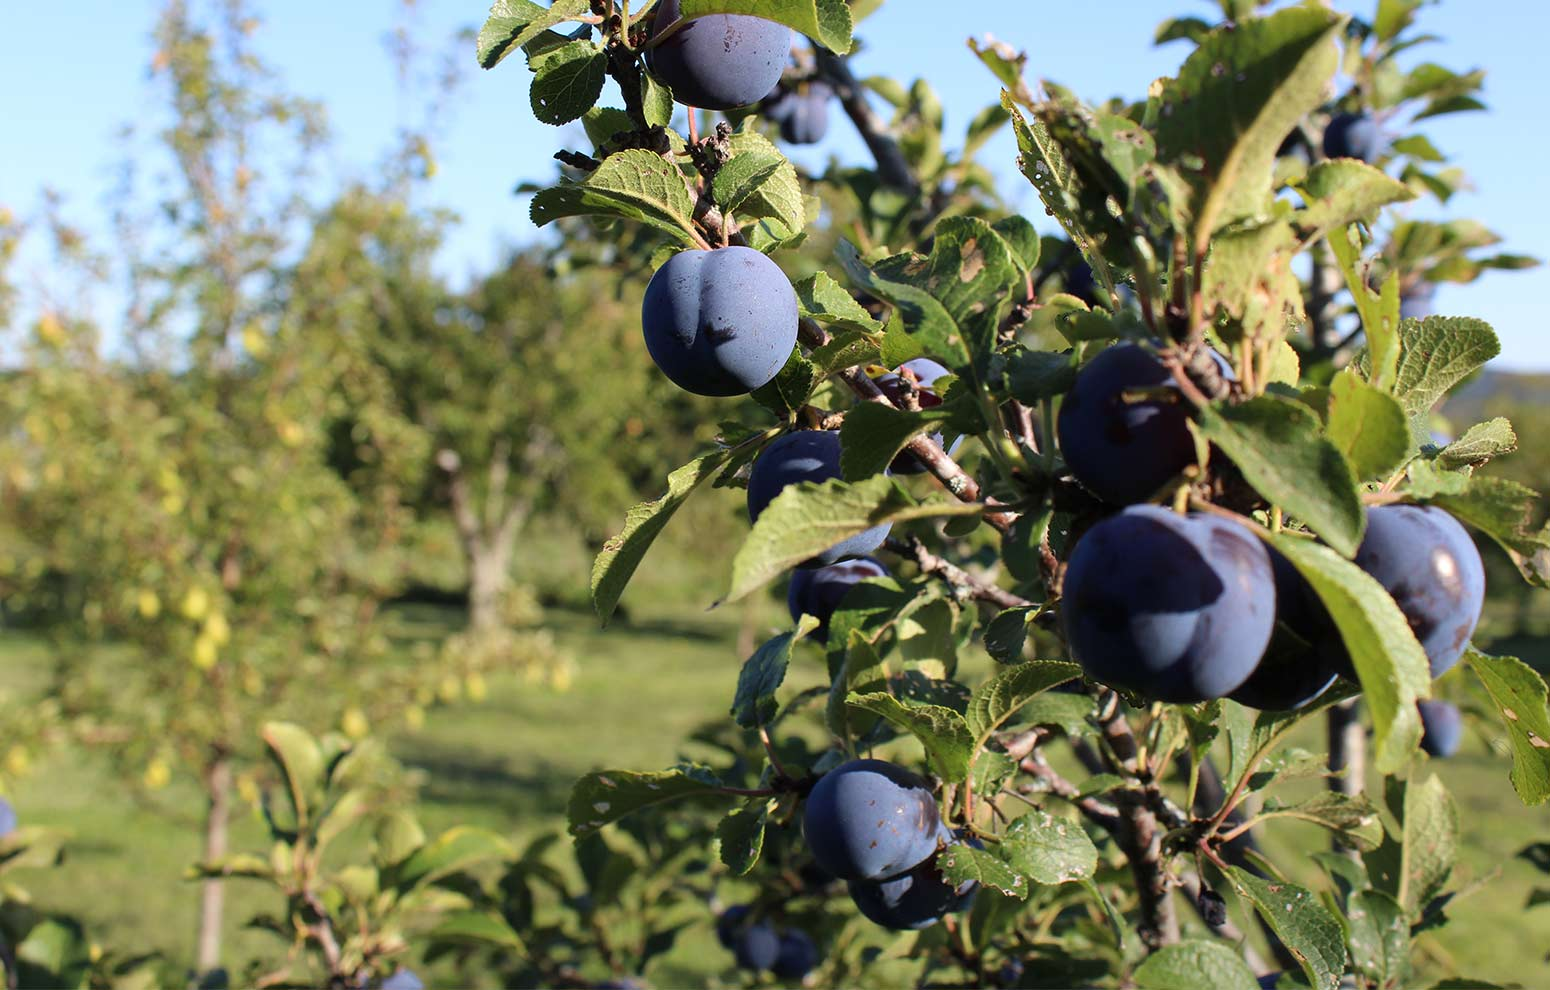 Blue Damson plums on the branch